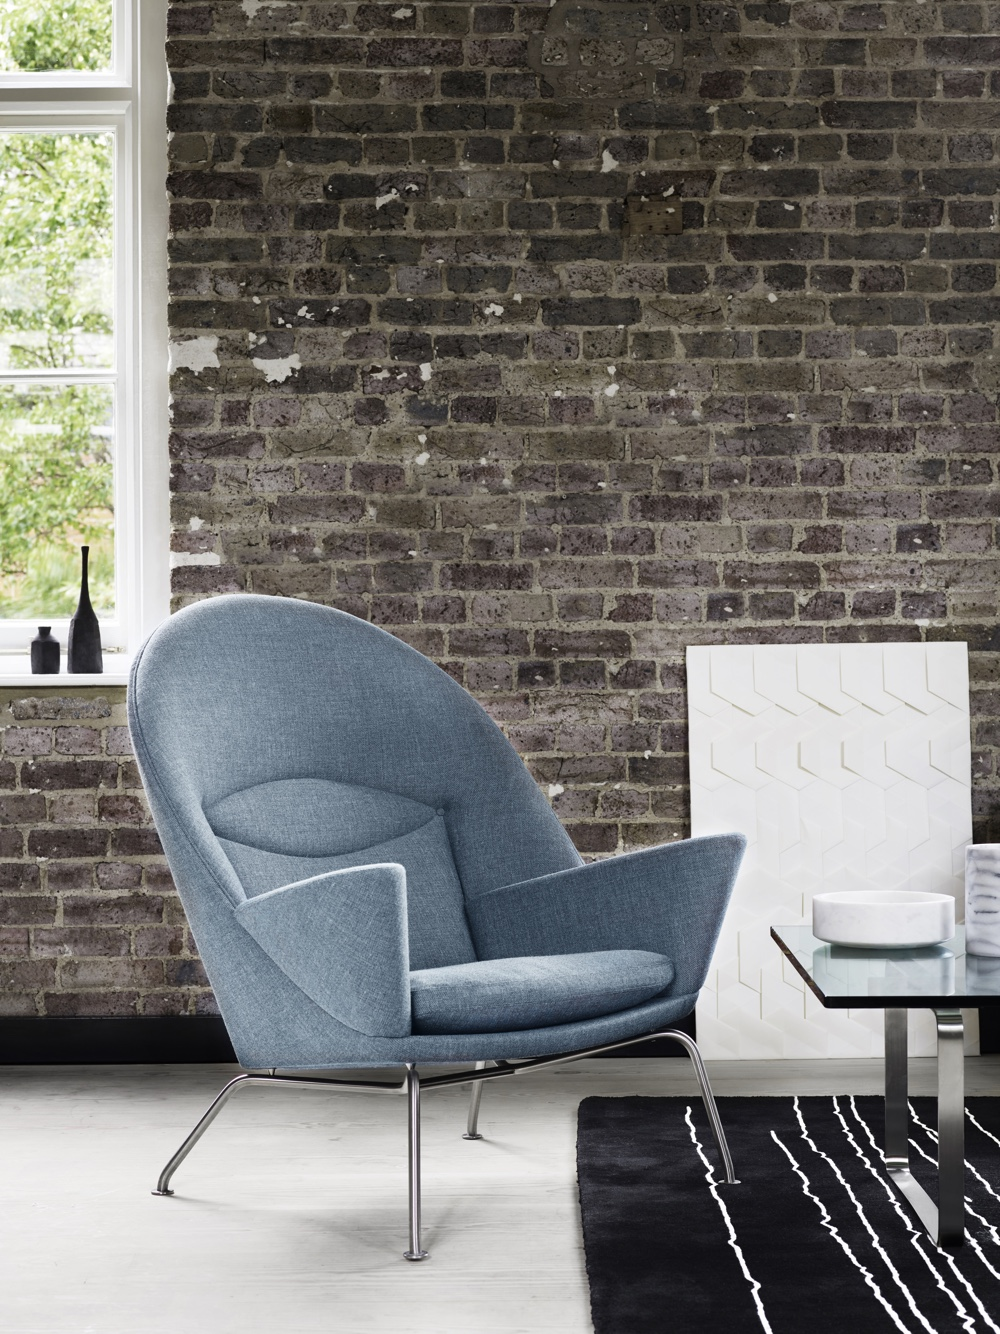 CH468 Oculus Chair. Image courtesy of Carl Hansen & Søn.